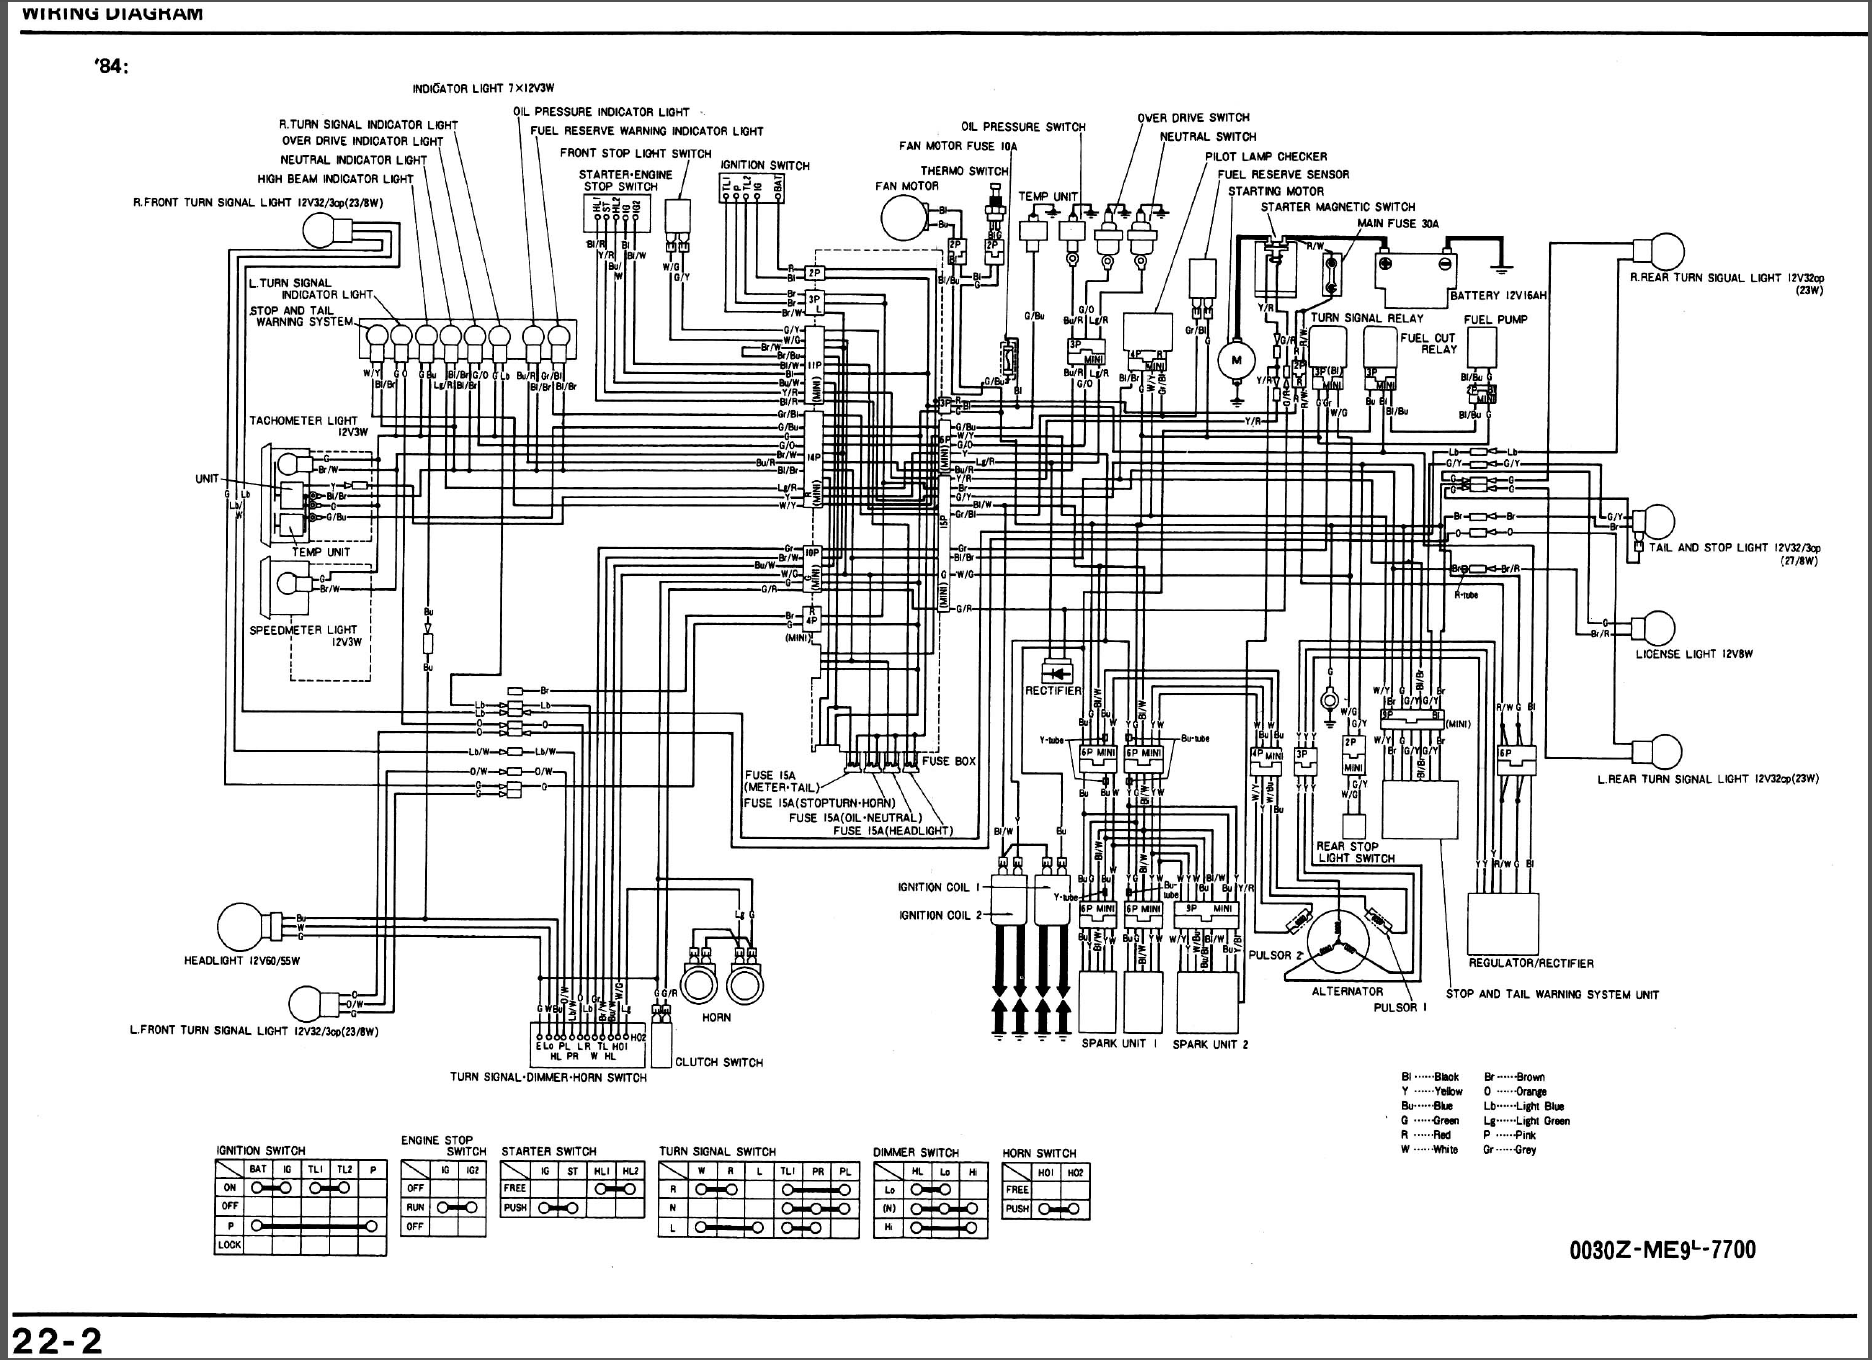 [NRIO_4796]   ☑ 1993 Honda Shadow Wiring Diagram HD Quality ☑ phase-diagrams .twirlinglucca.it | 2002 Honda Shadow Wiring Diagram |  | Diagram Database - Twirlinglucca.it